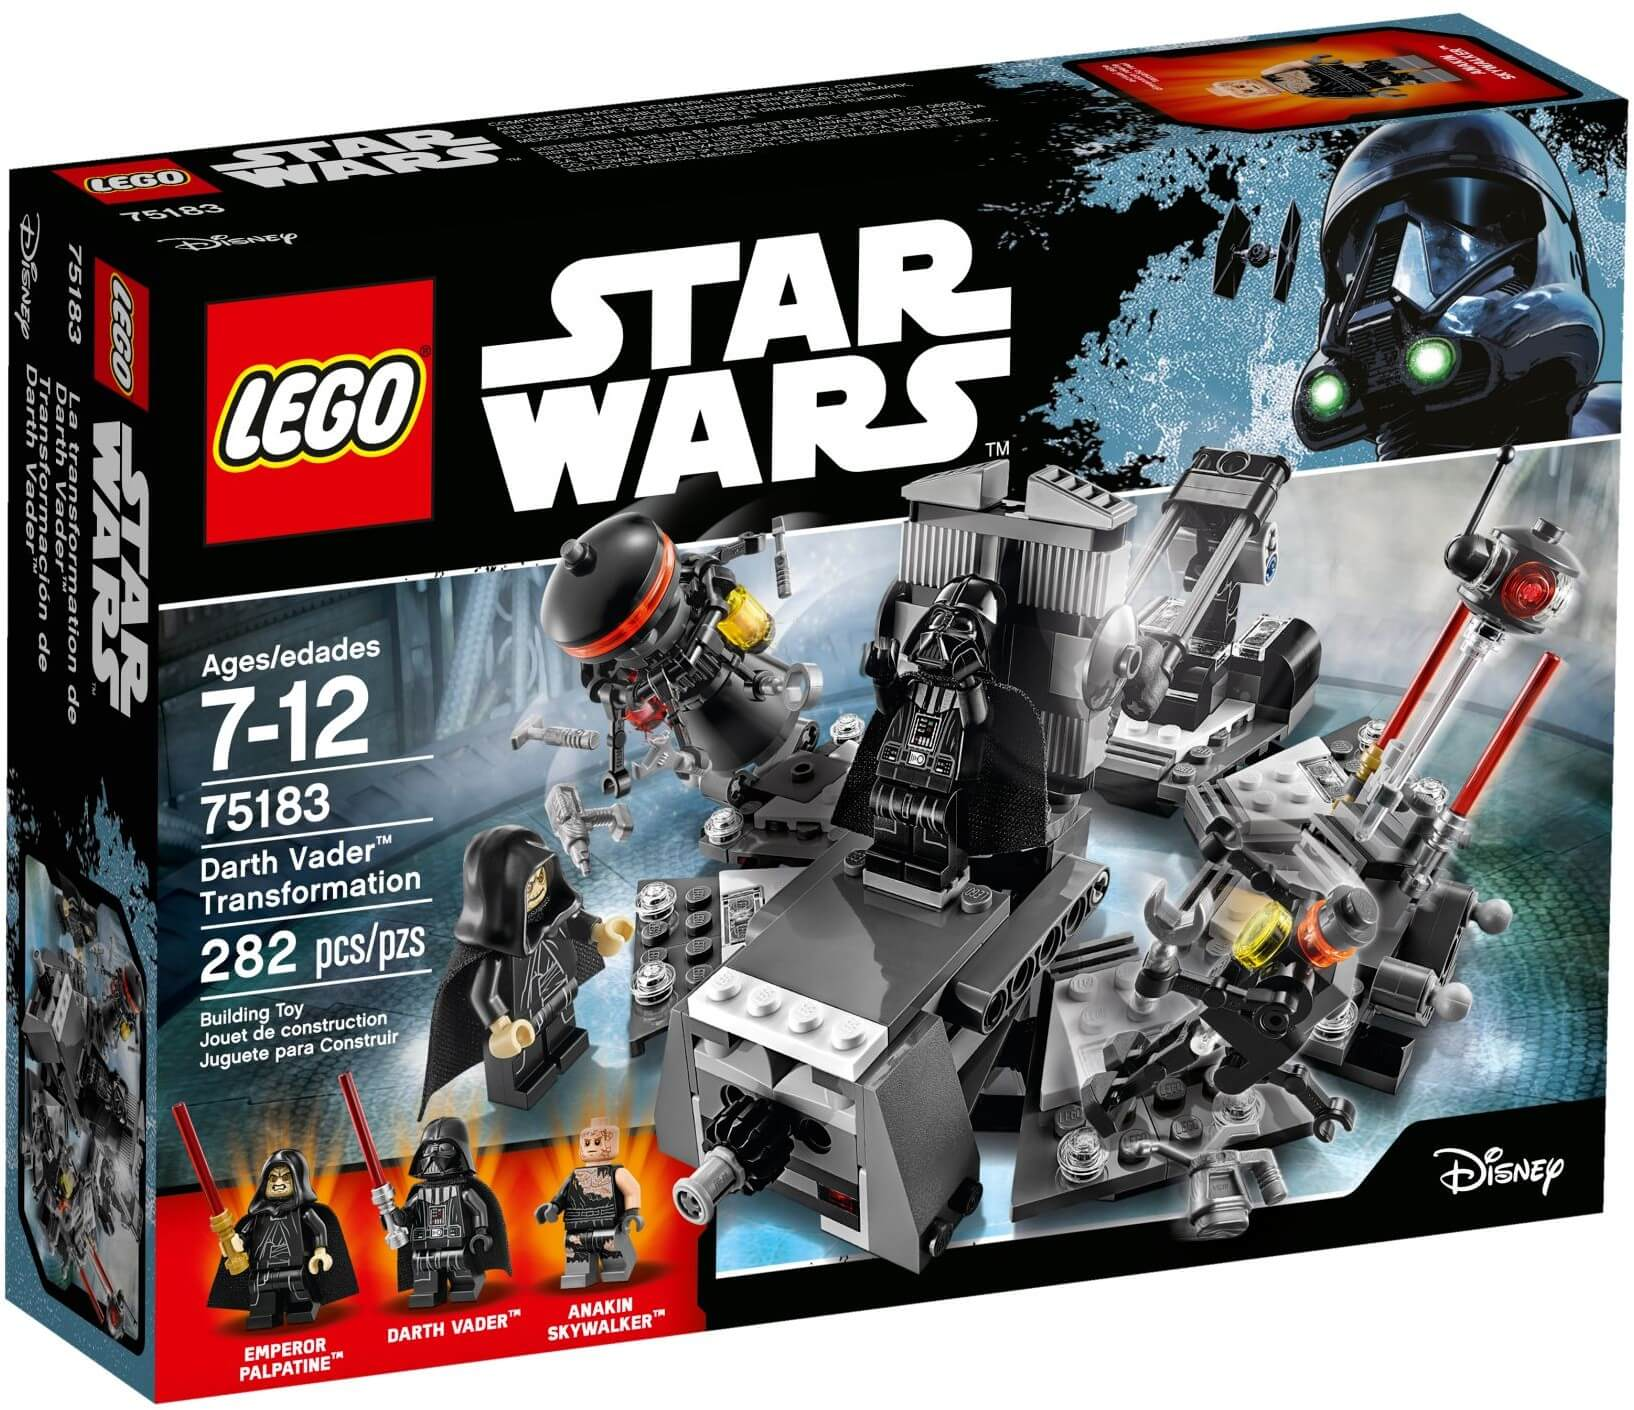 Mua đồ chơi LEGO 75183 - LEGO Star Wars 75183 - Darth Vader tái sinh từ Anakin Skywalker (LEGO Star Wars Darth Vader Transformation)